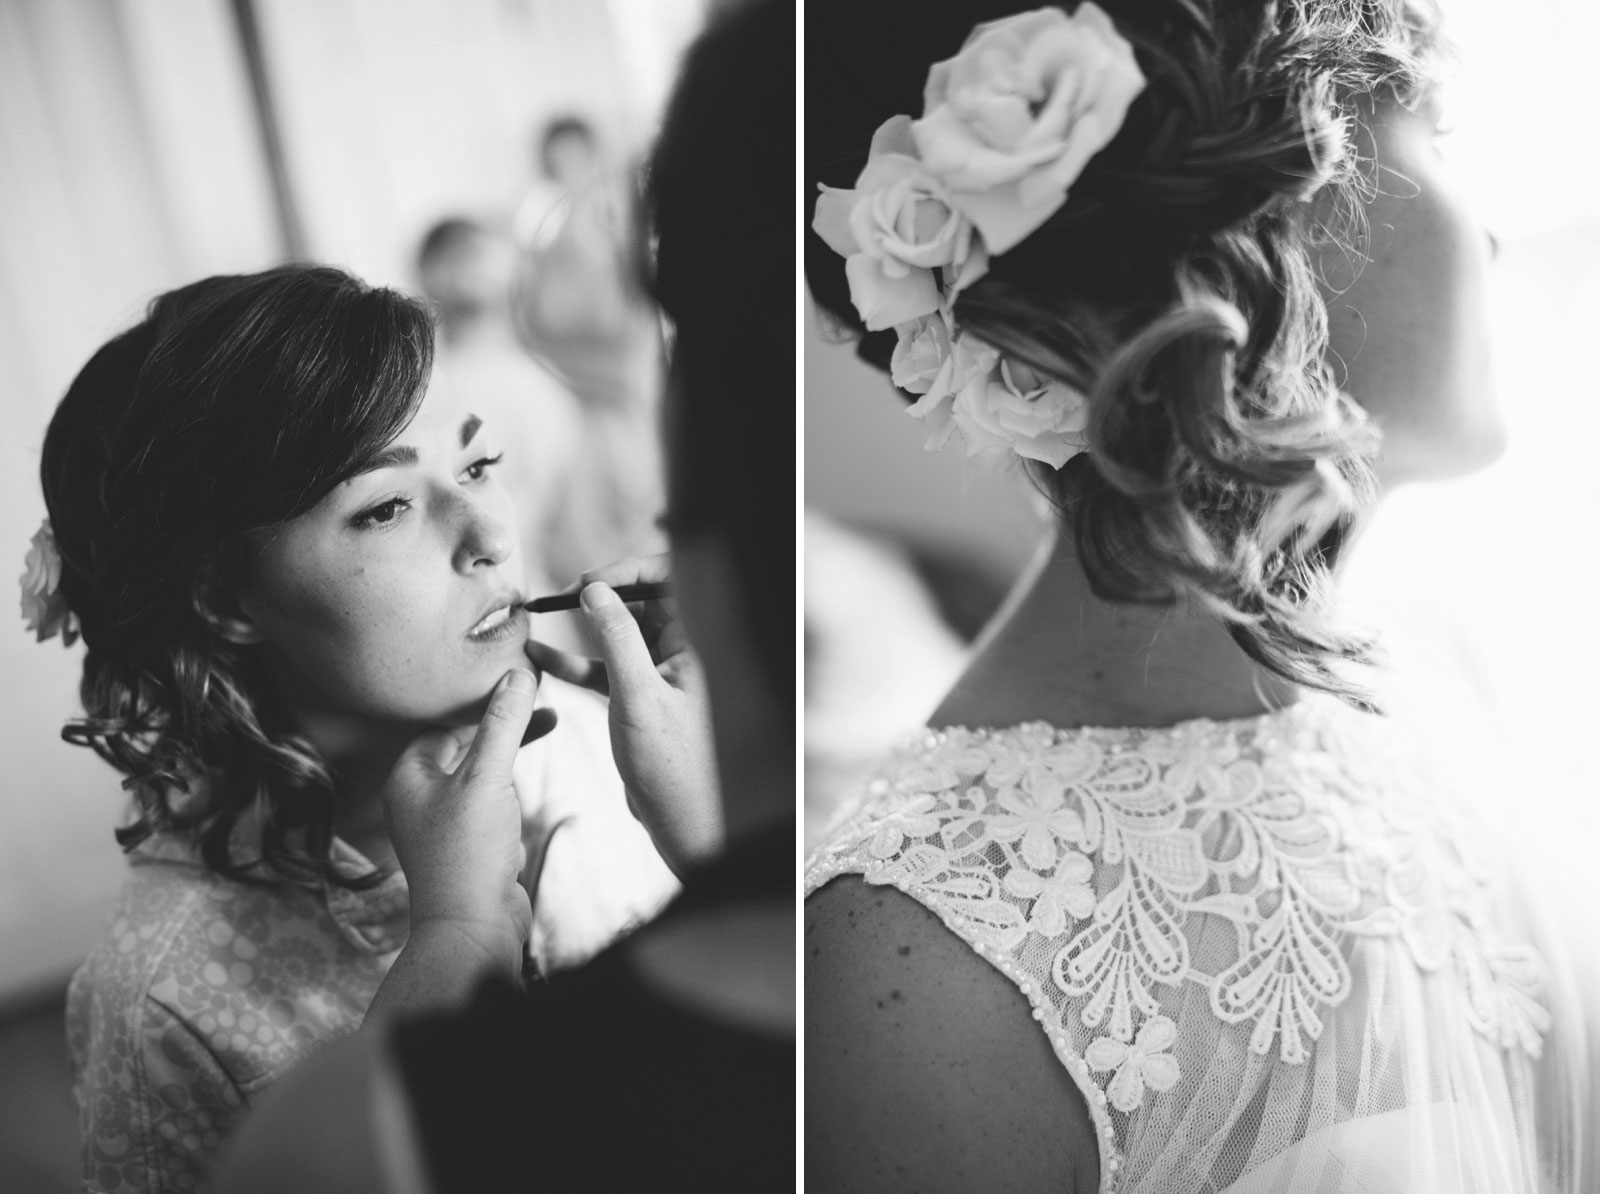 Bride getting ready and getting her makeup done, detail of bride's hair and dress, black and white.